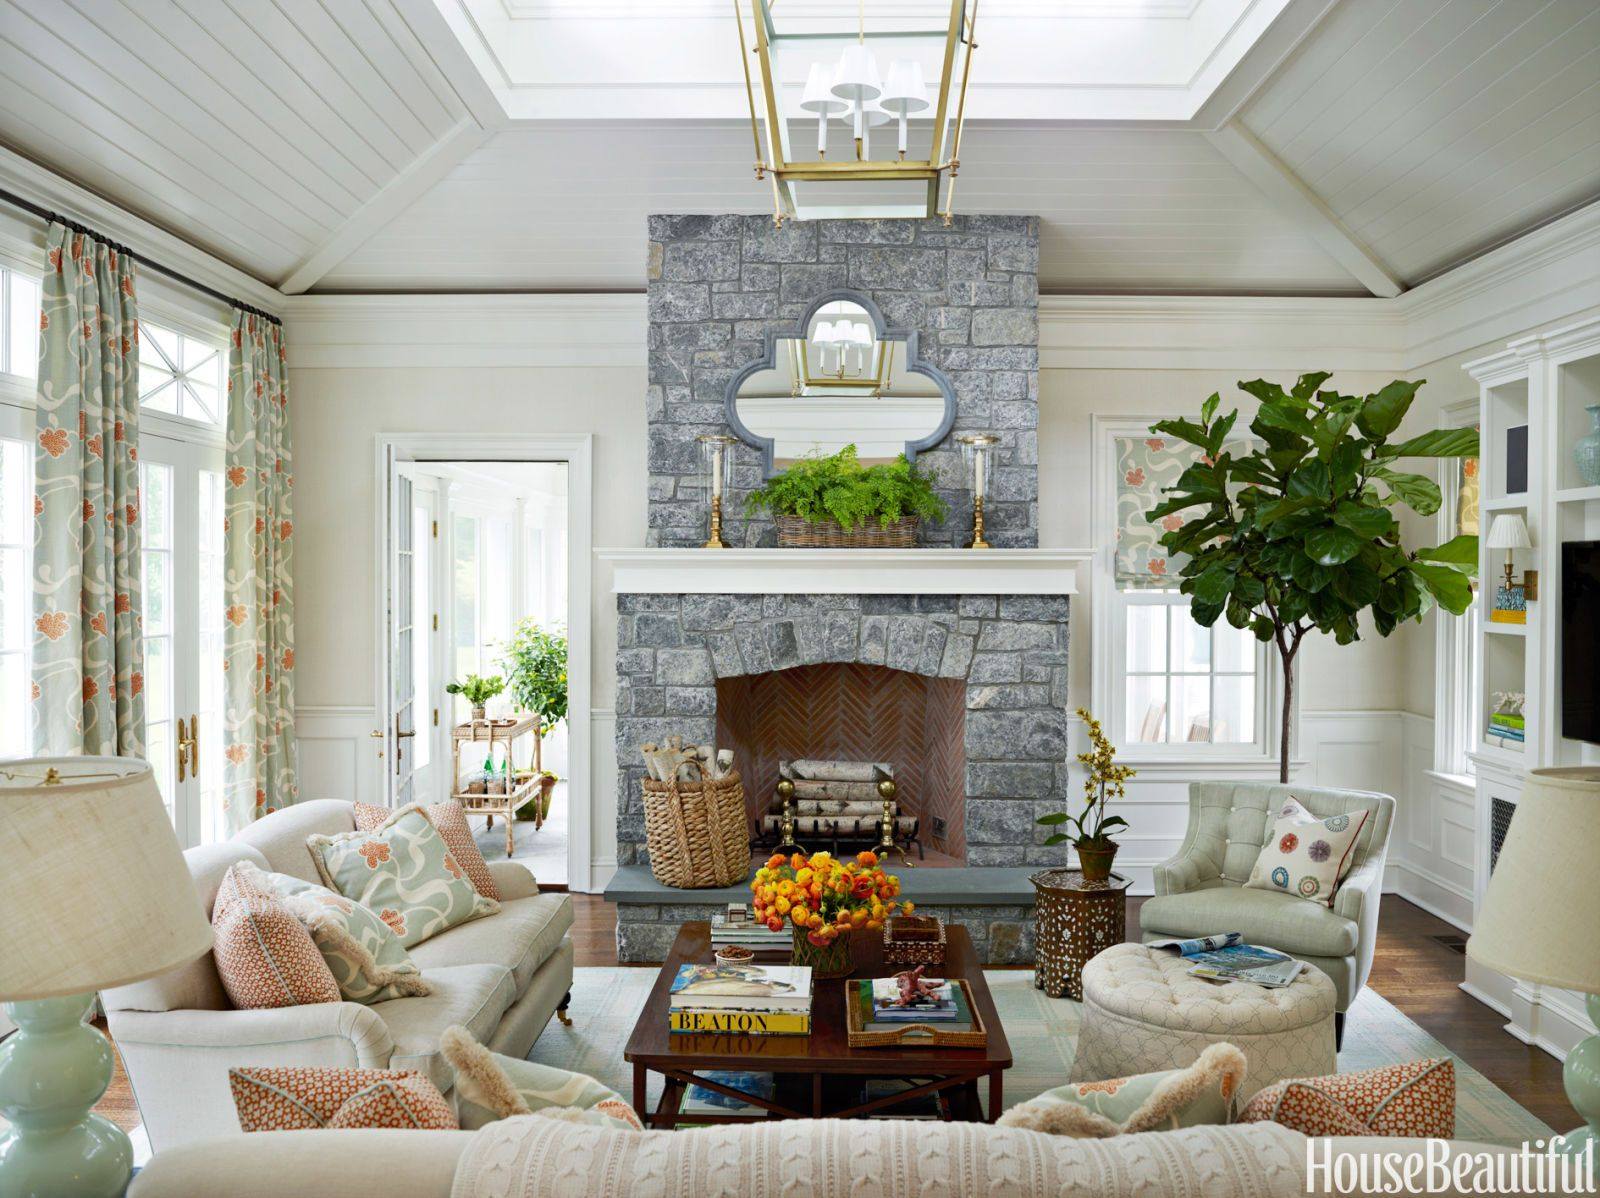 Awesome 60 Family Room Design Ideas Decorating Tips For Rooms Part 27